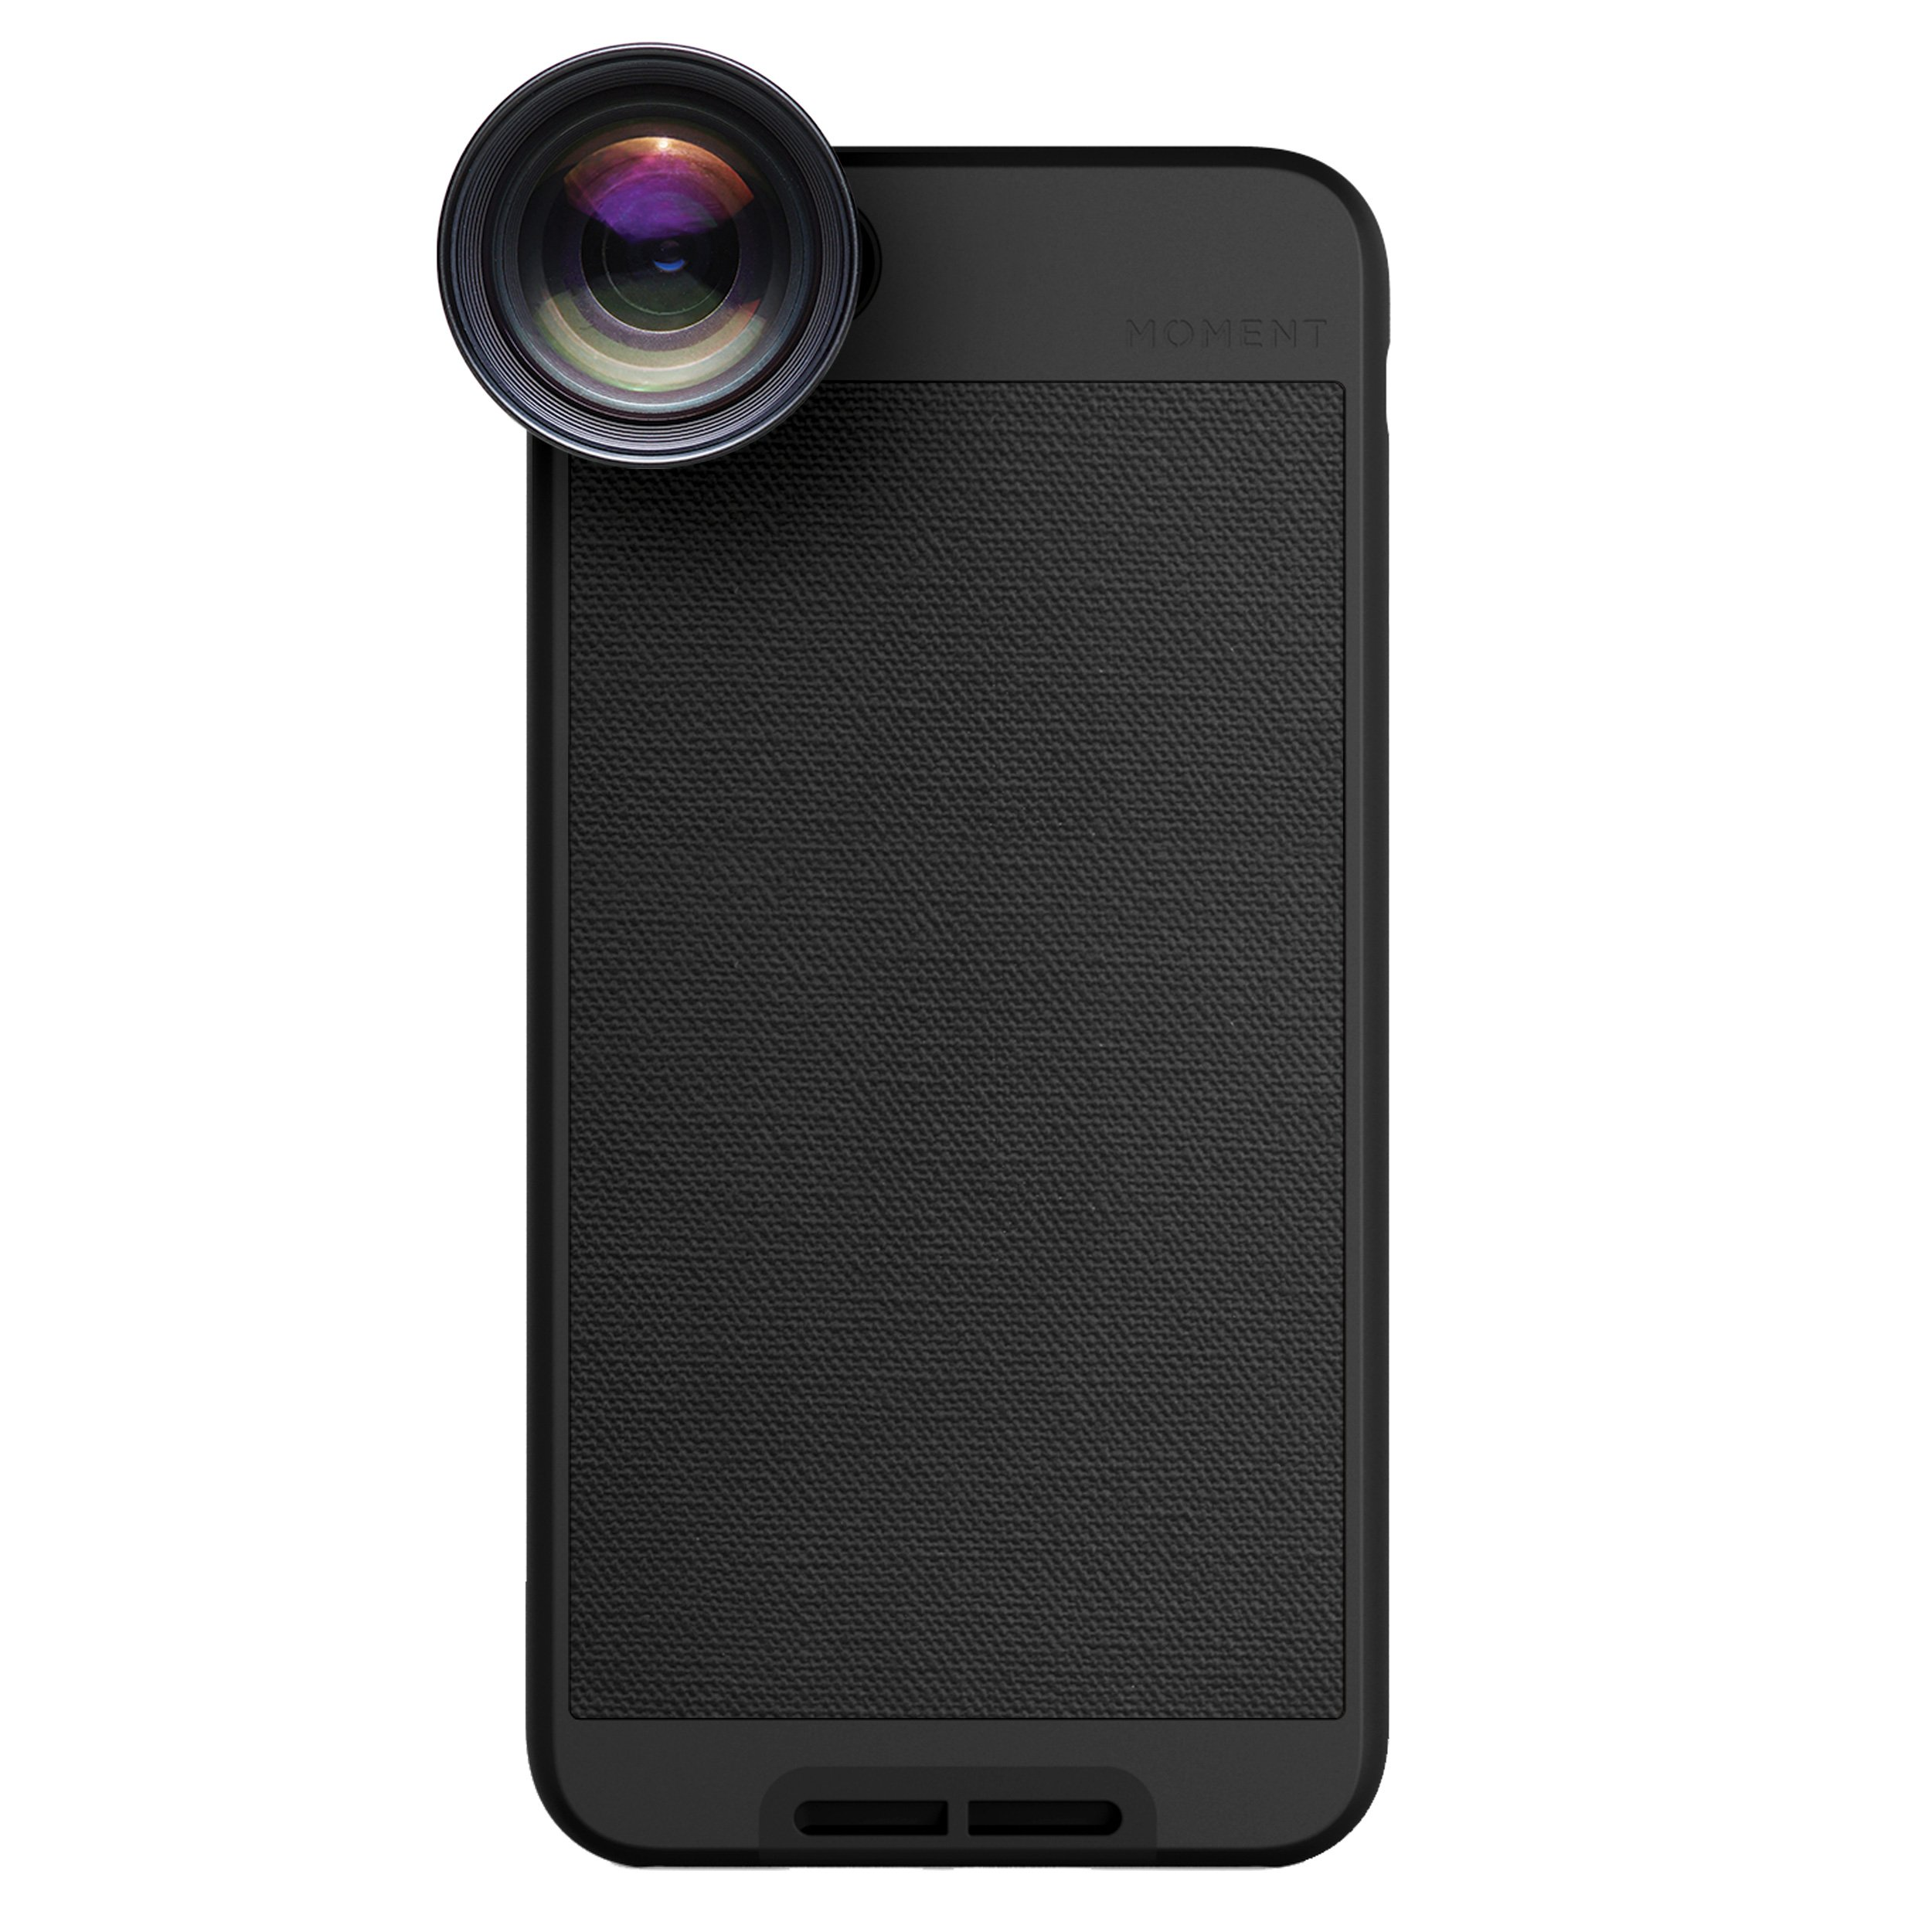 iPhone 6 Plus Case with Telephoto Lens Kit || Moment Black Canvas Photo Case plus Tele Lens || Best iphone zoom attachment lens with thin protective case.